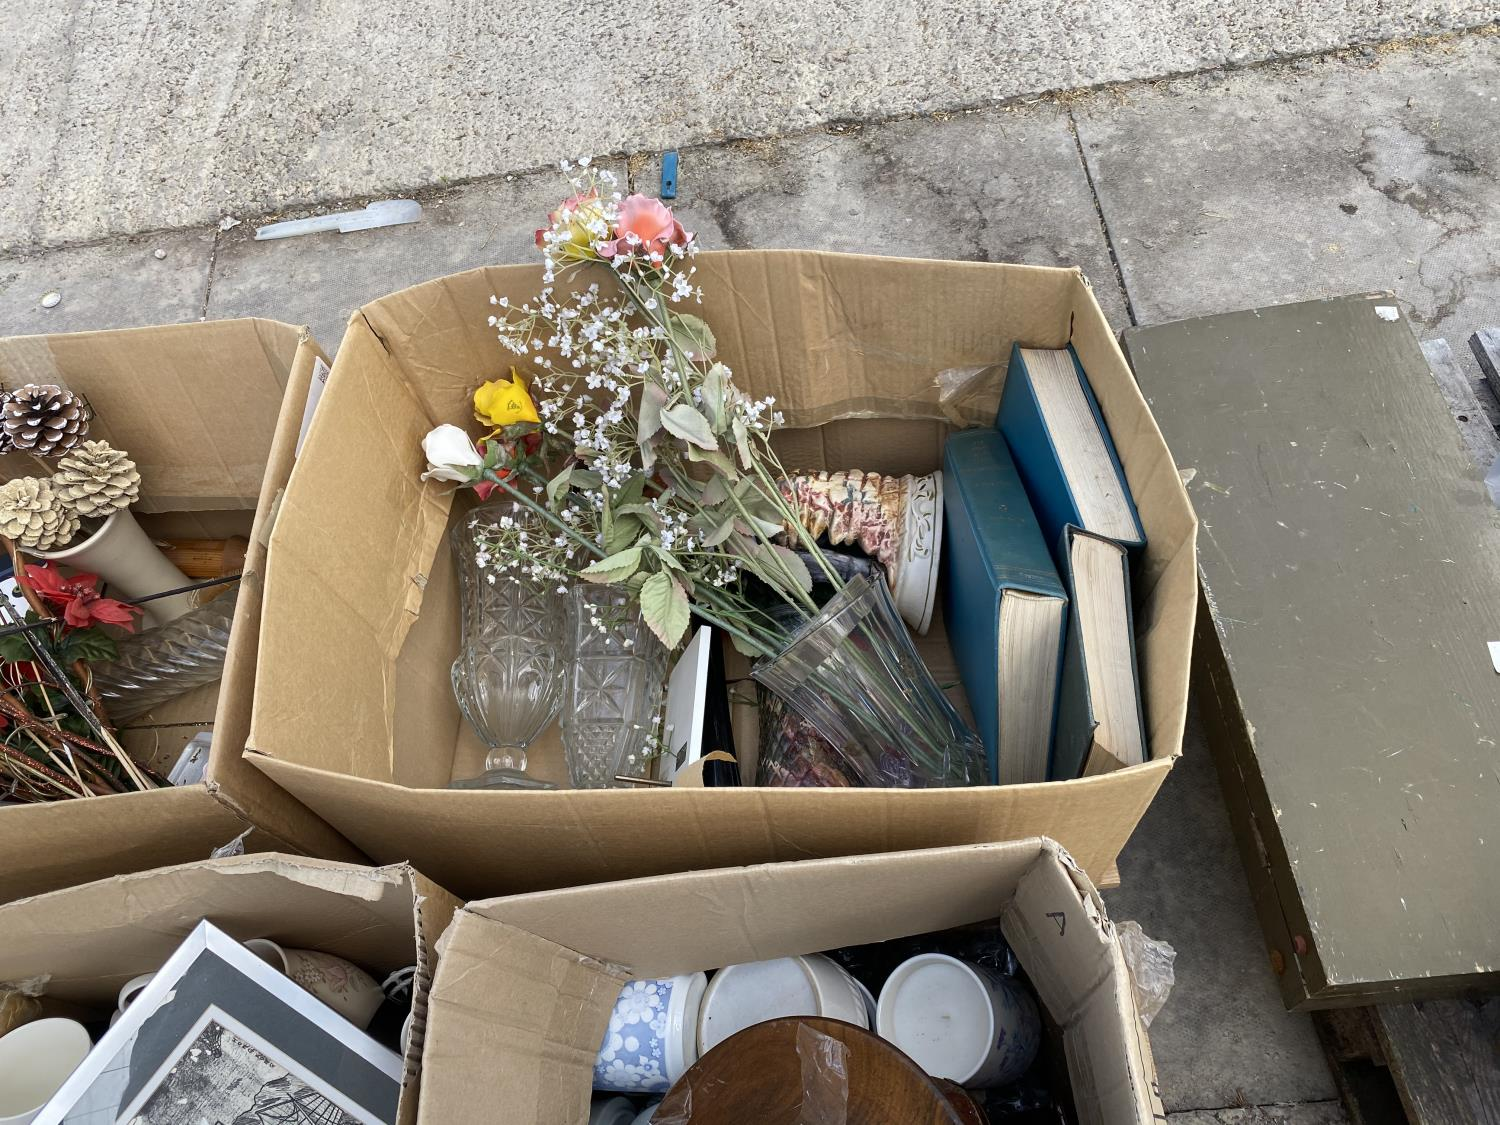 AN ASSORTMENT OF HOUSEHOLD CLEARANCE ITEMS TO INCLUDE SUITCASES, CERAMICS AND PRINTS ETC - Image 3 of 4